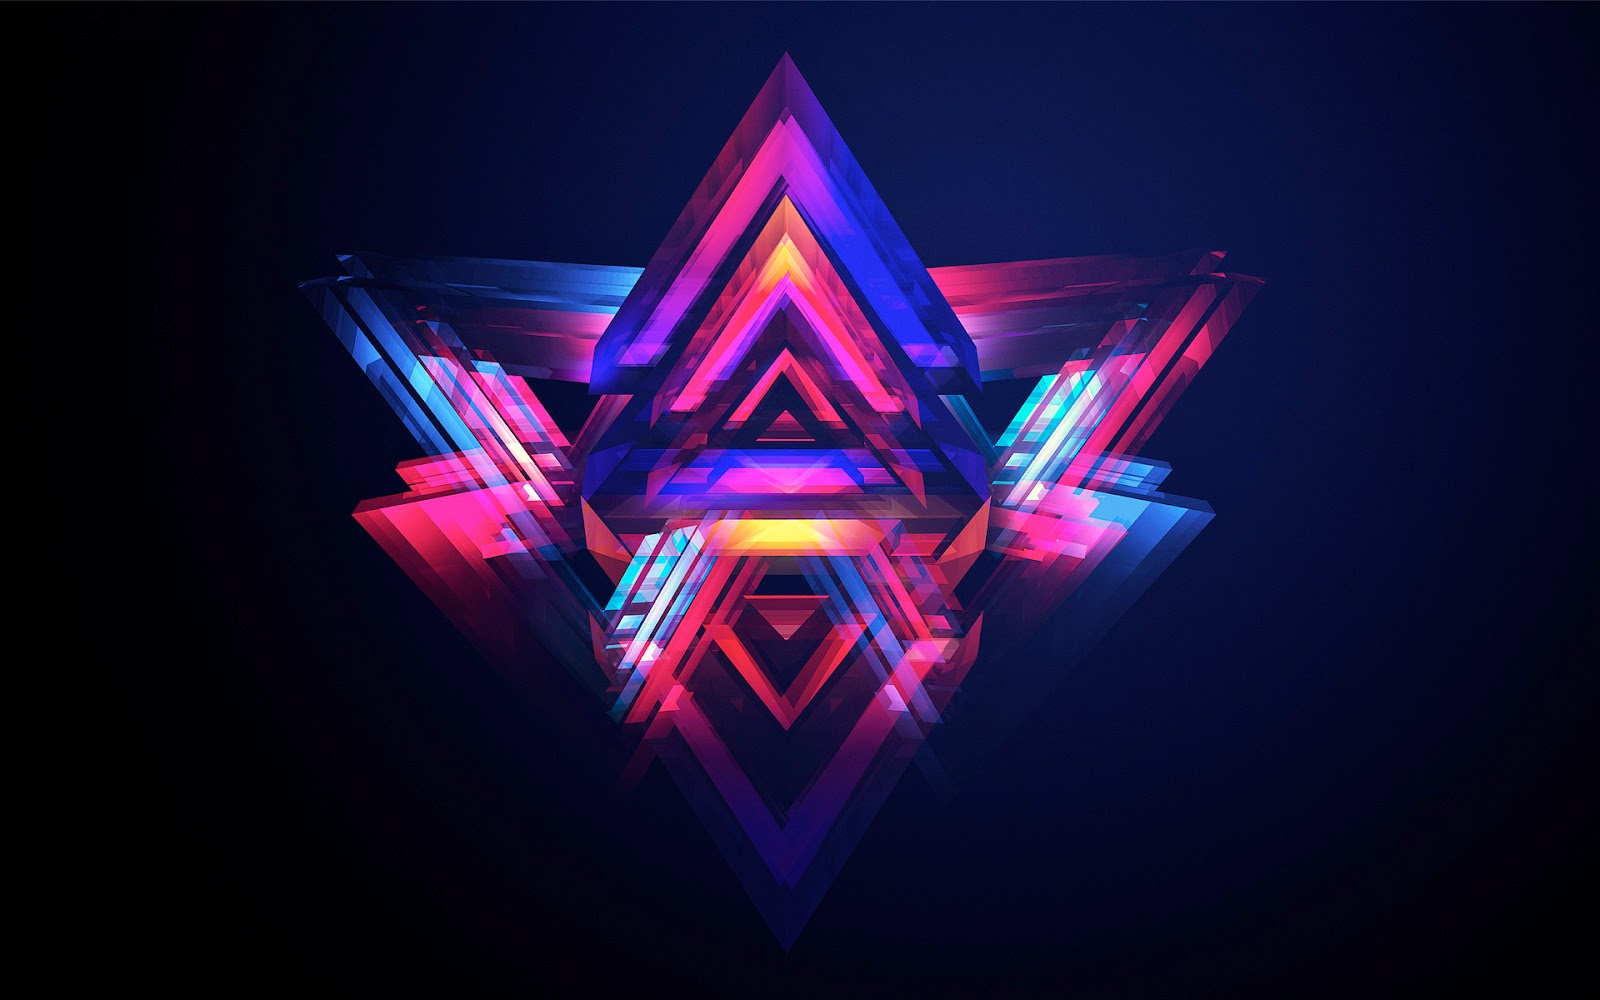 Abstract Pyramids Wallpapers